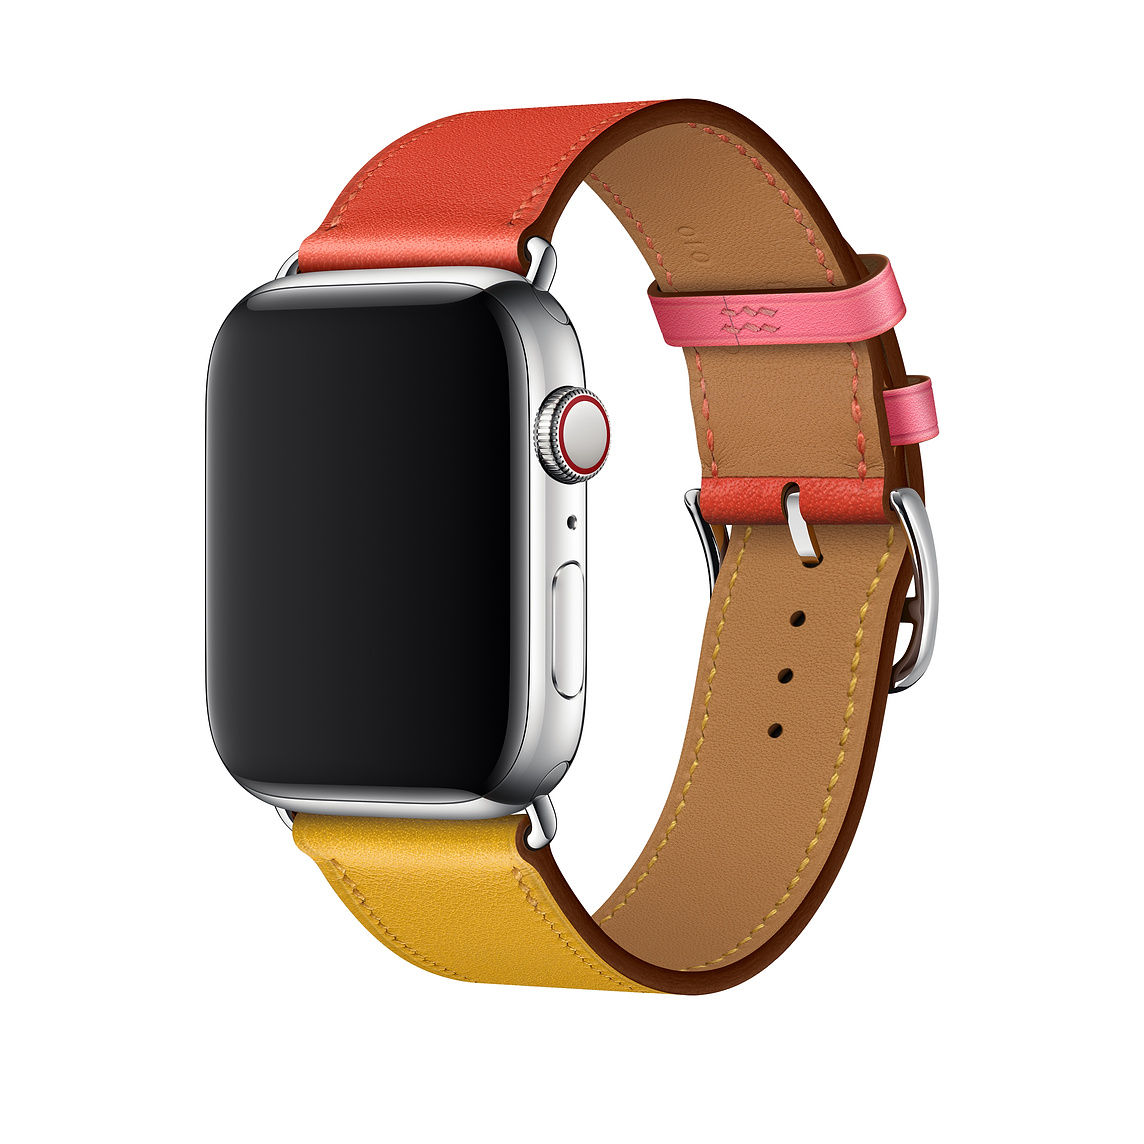 Řemínek Single Tour pro Apple Watch Series 3 2 1 (42mm) - 2ead83f7d43